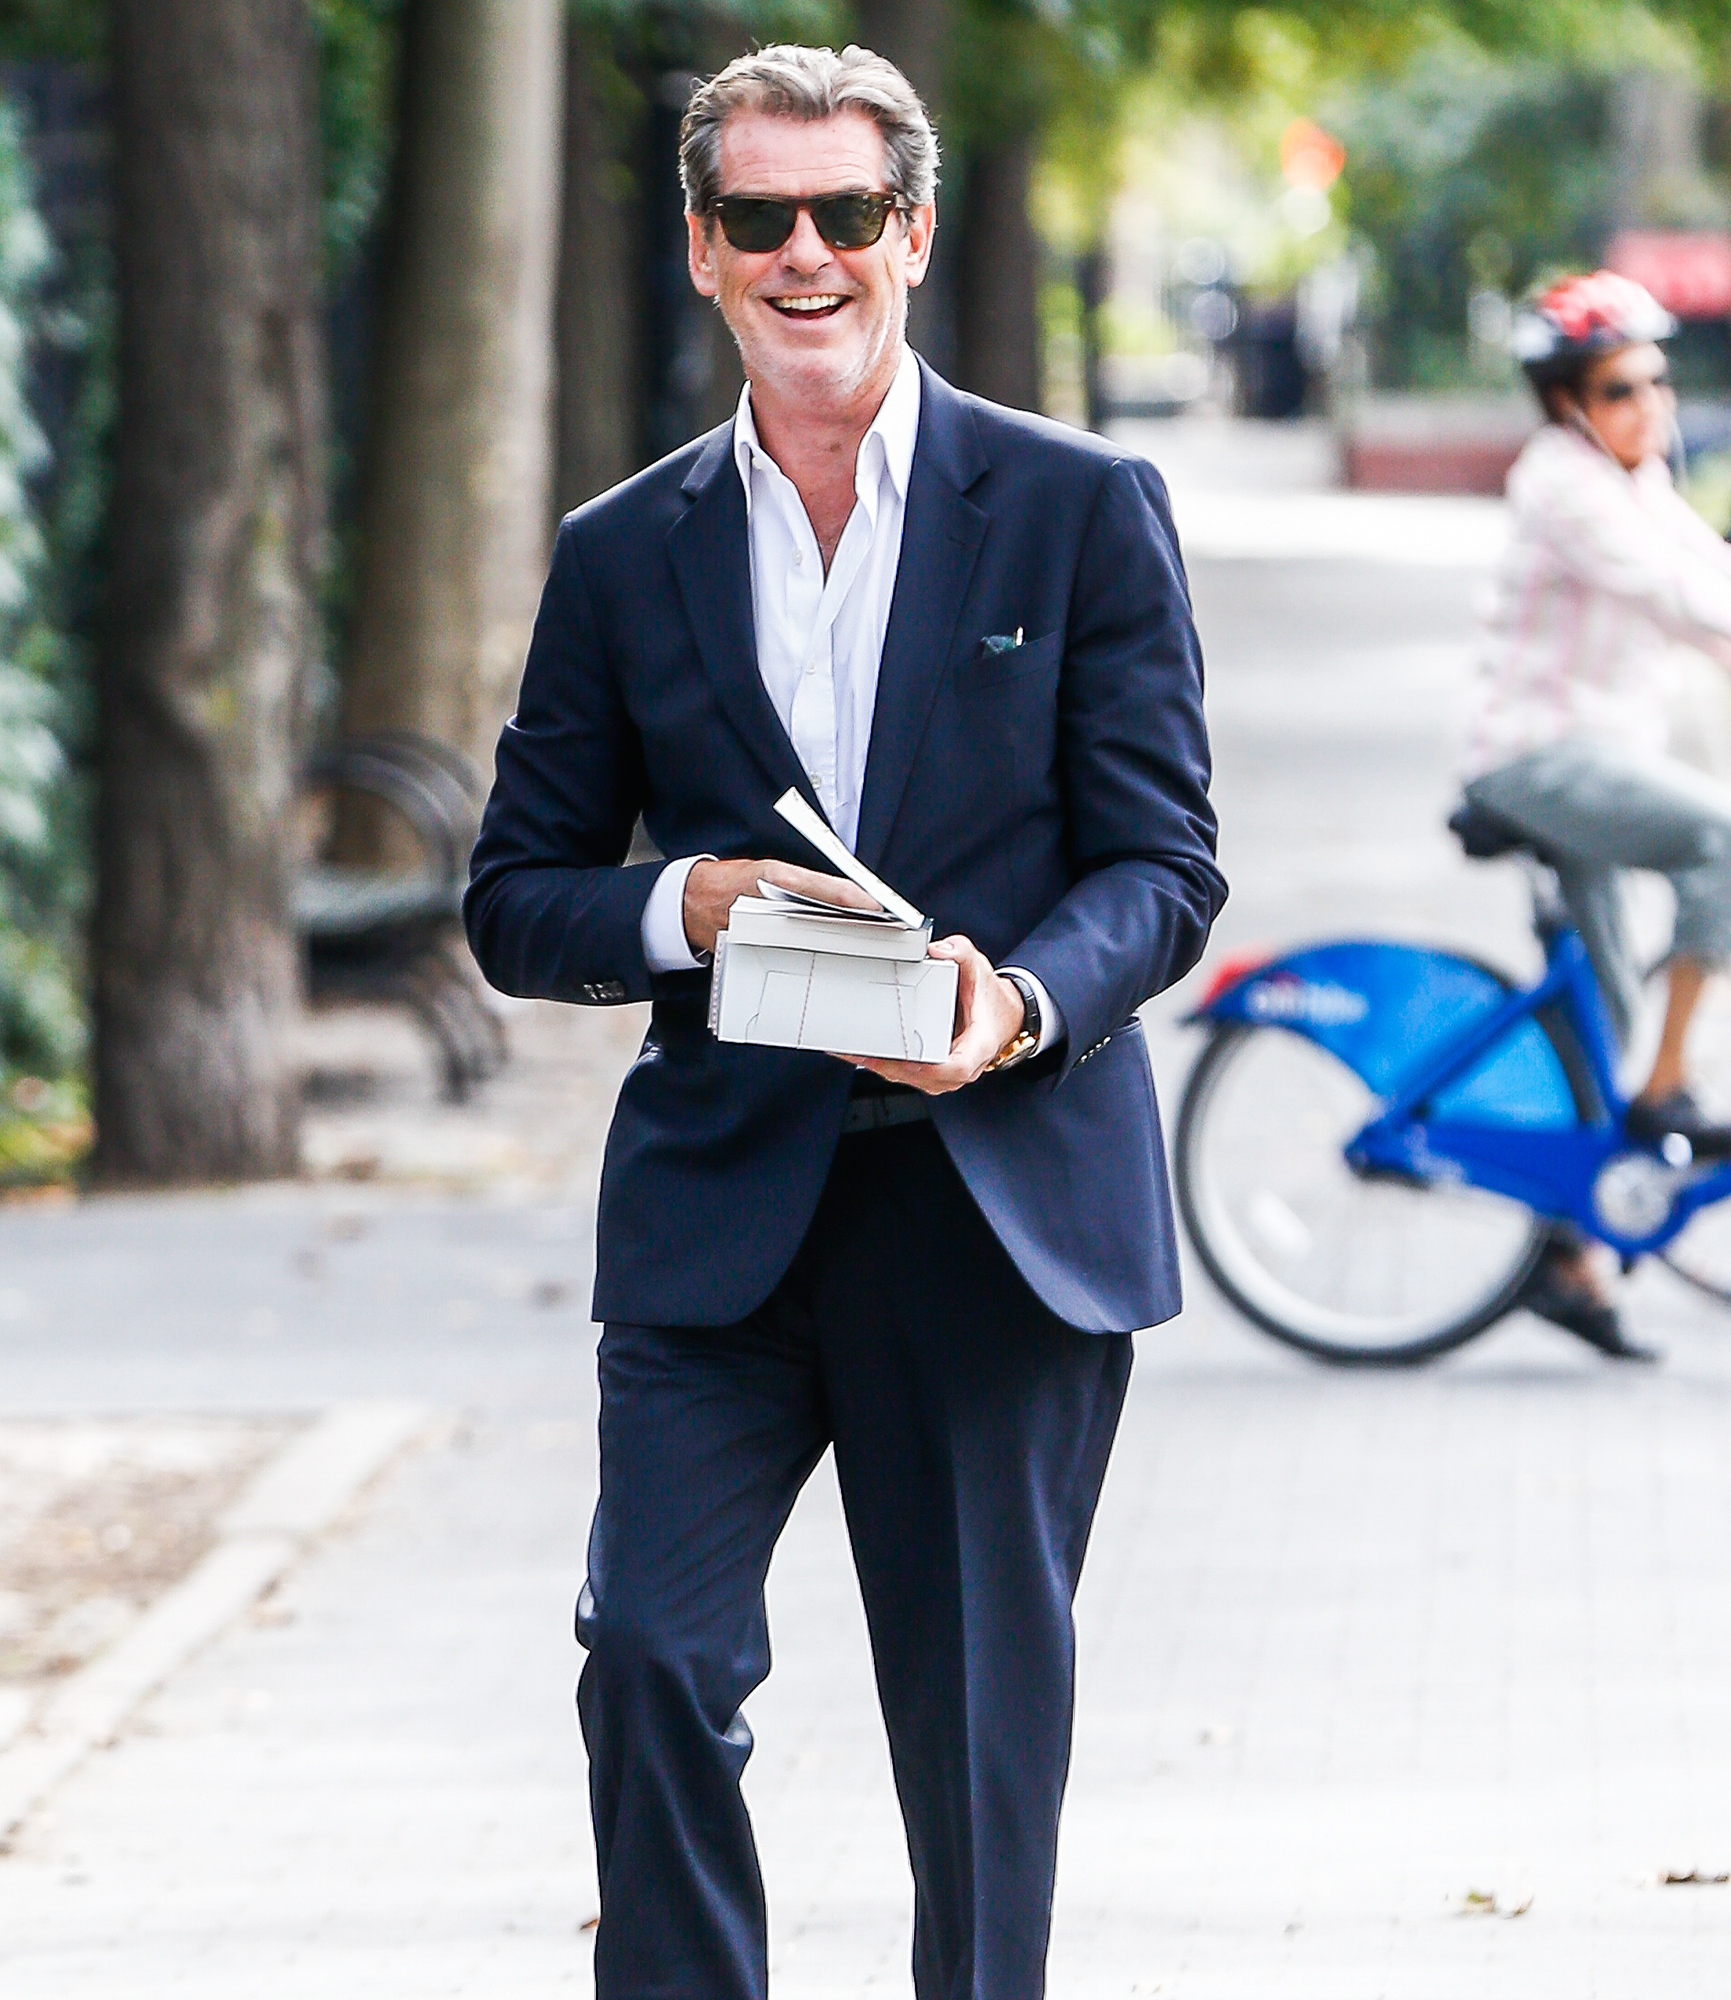 Piecr Brosnan leads the cast while filming 'The Only Living Boy in New York'